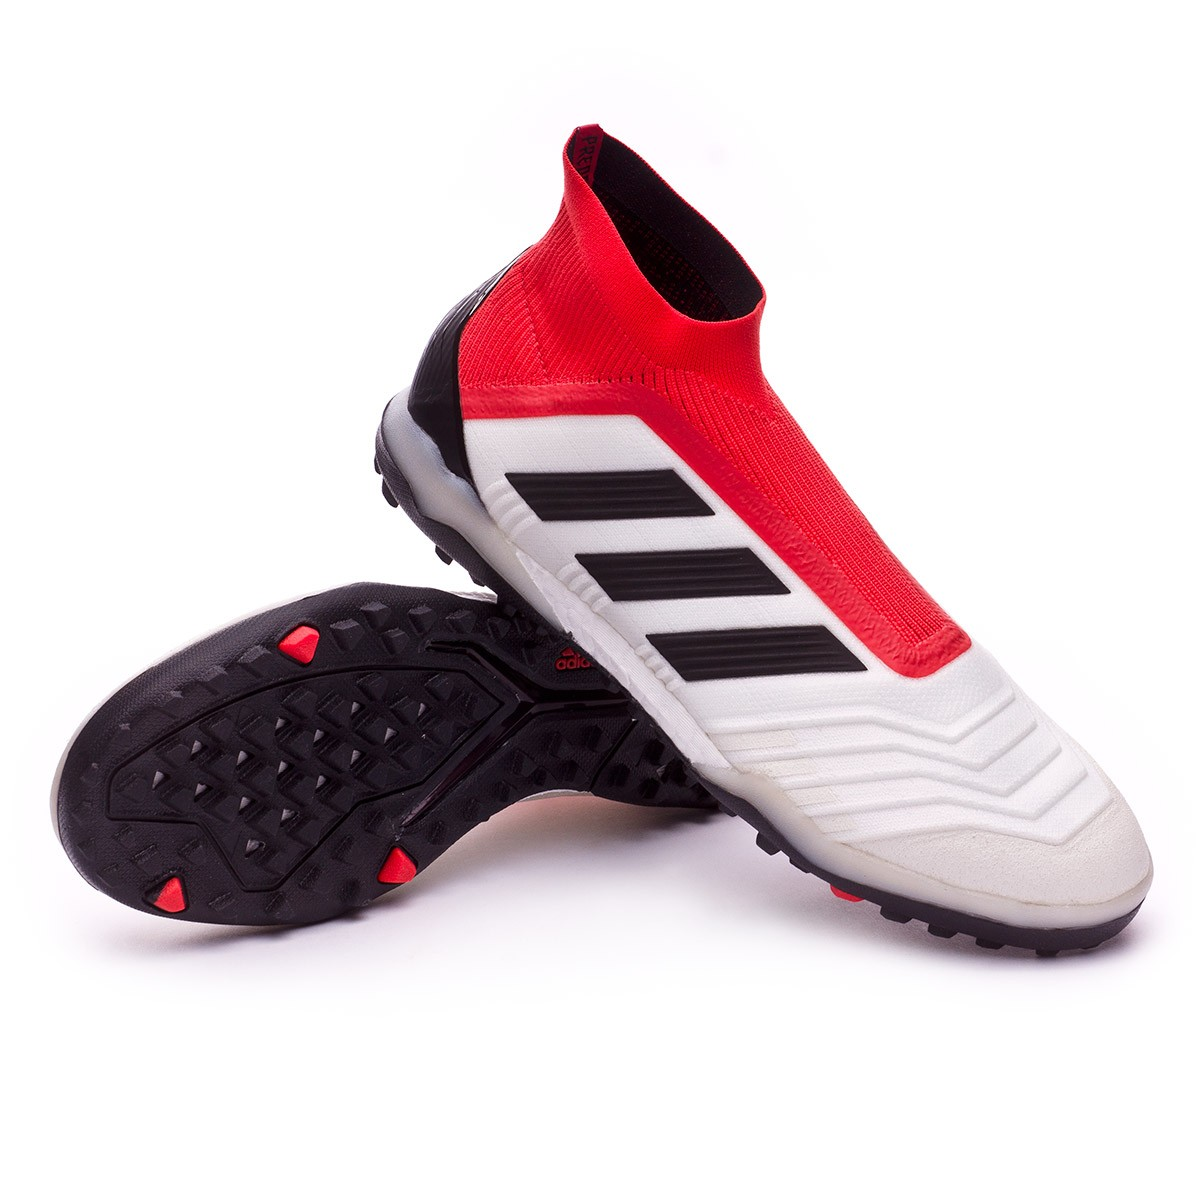 efa1f01d08b9 Football Boot adidas Predator Tango 18+ Turf White-Core black-Real ...